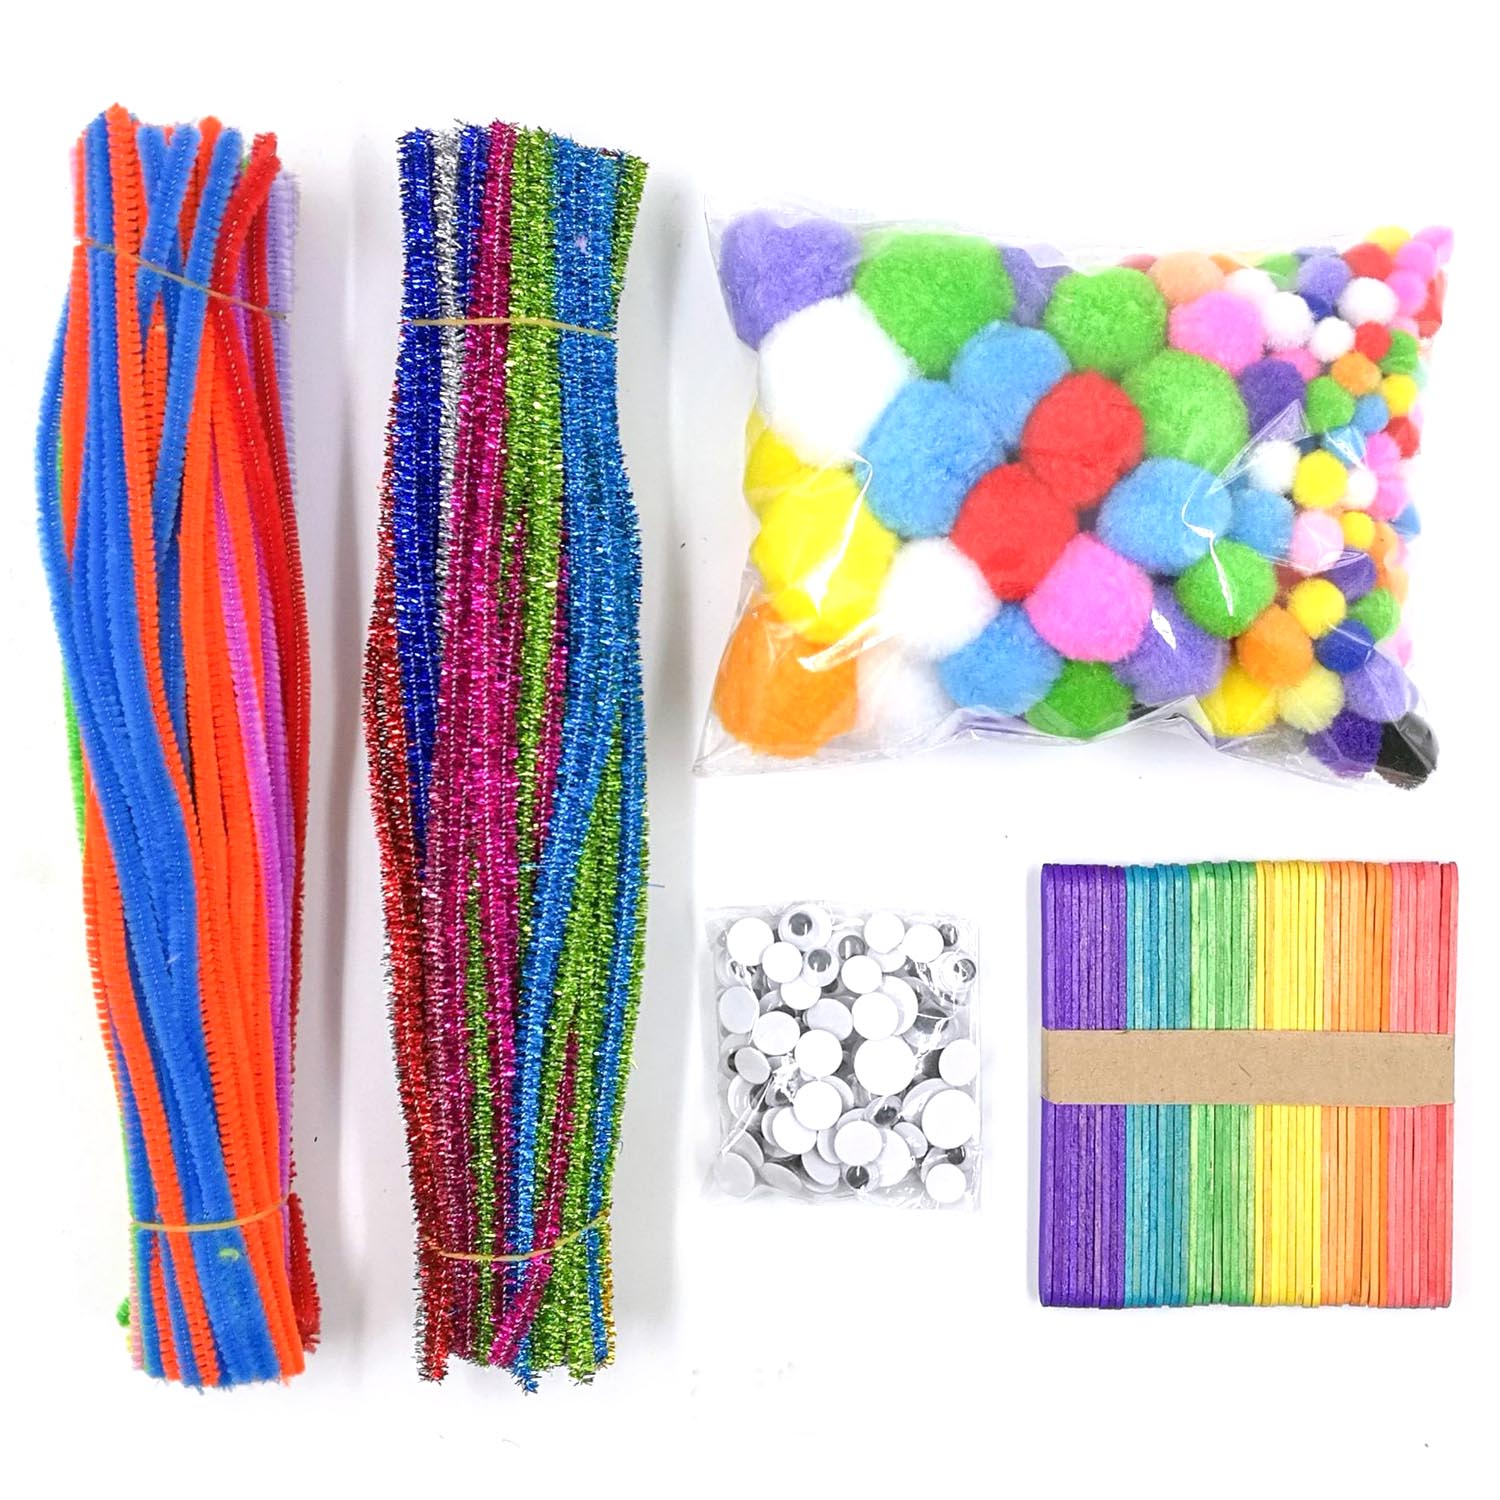 Kid 600pcs/1set Fluffy Glitter Chenille Stem Sticks Pipe Cleaner Wiggle Googly Eyes Pom Poms Ball Wooden Popsicle Stick DIY Toy